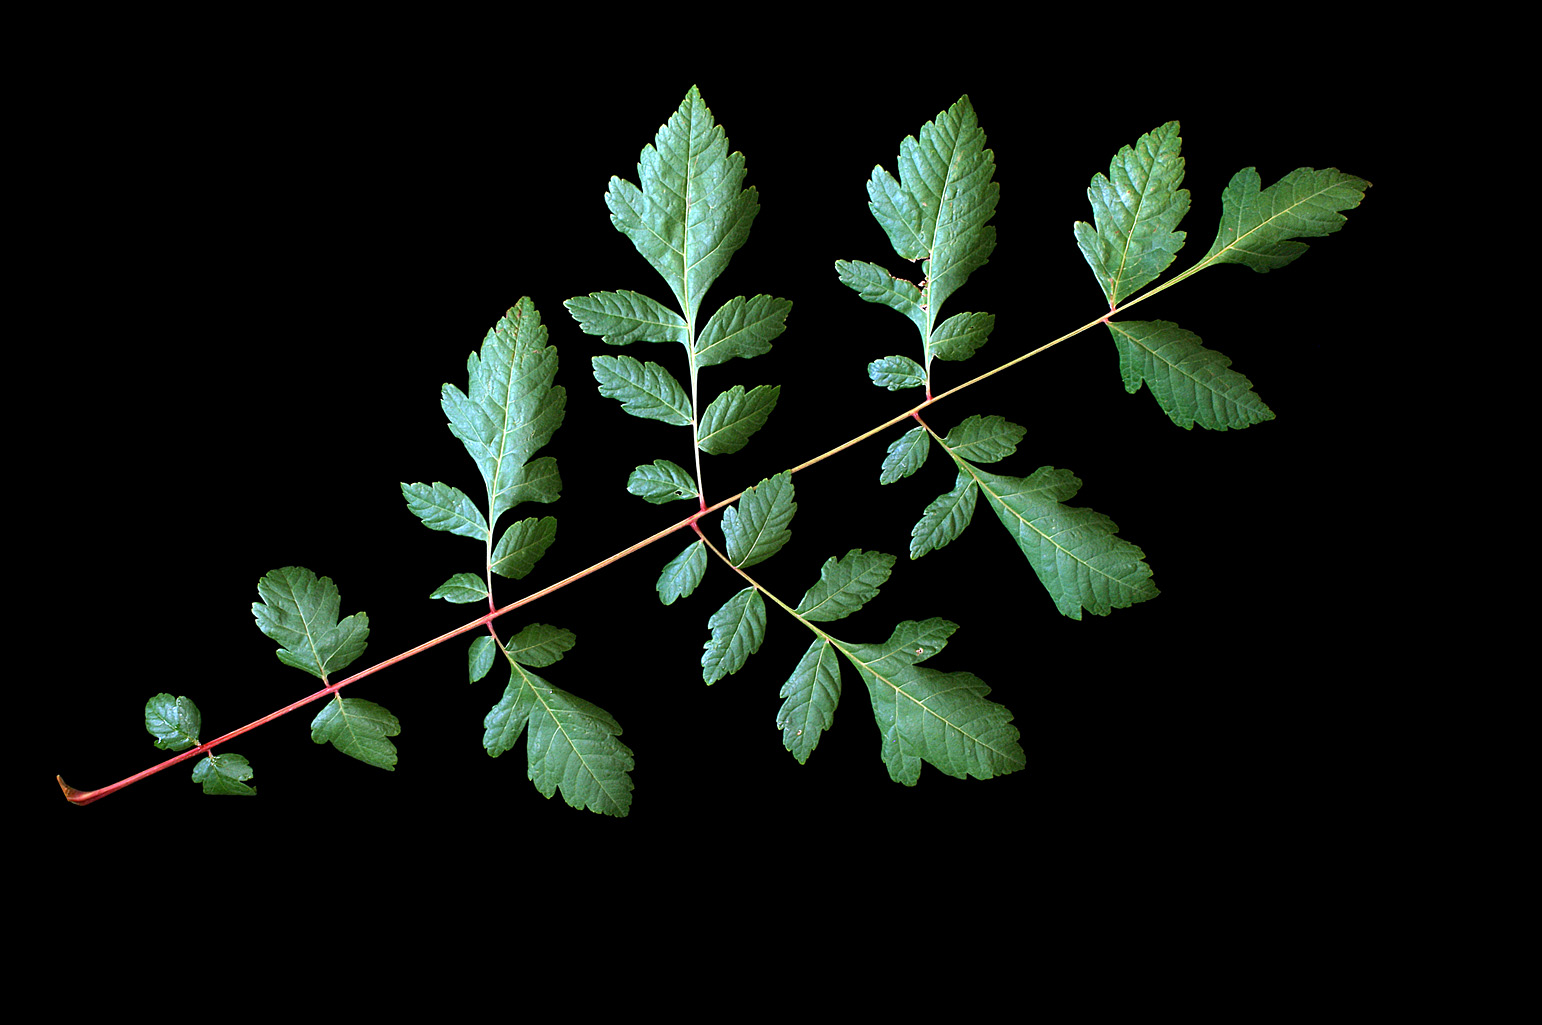 Pinnate leaf 30 cm long with irregularly shaped to pinnatifid lobed leaflets